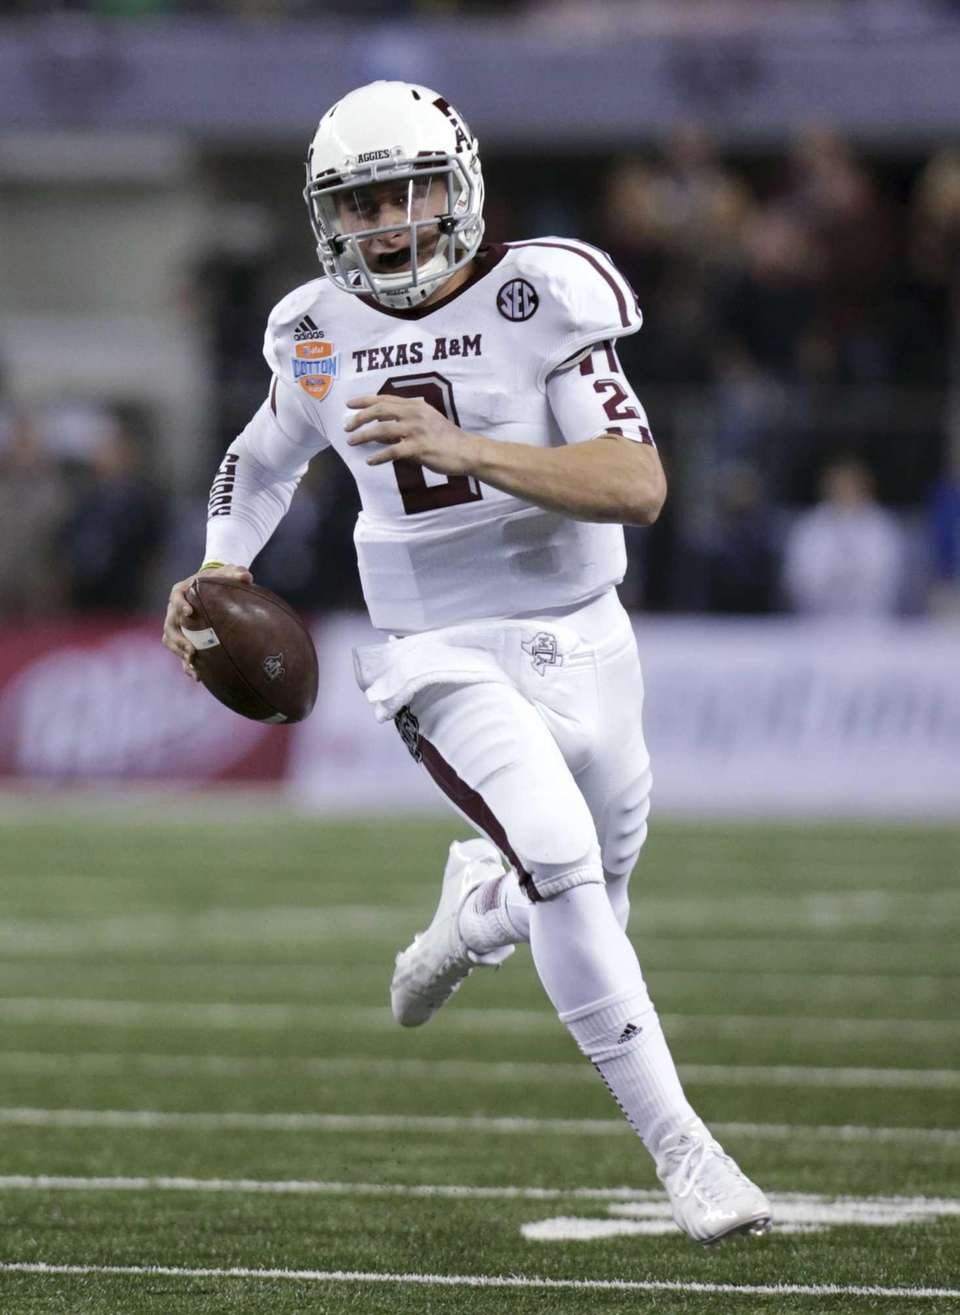 Texas A&M's Johnny Manziel finds running room against